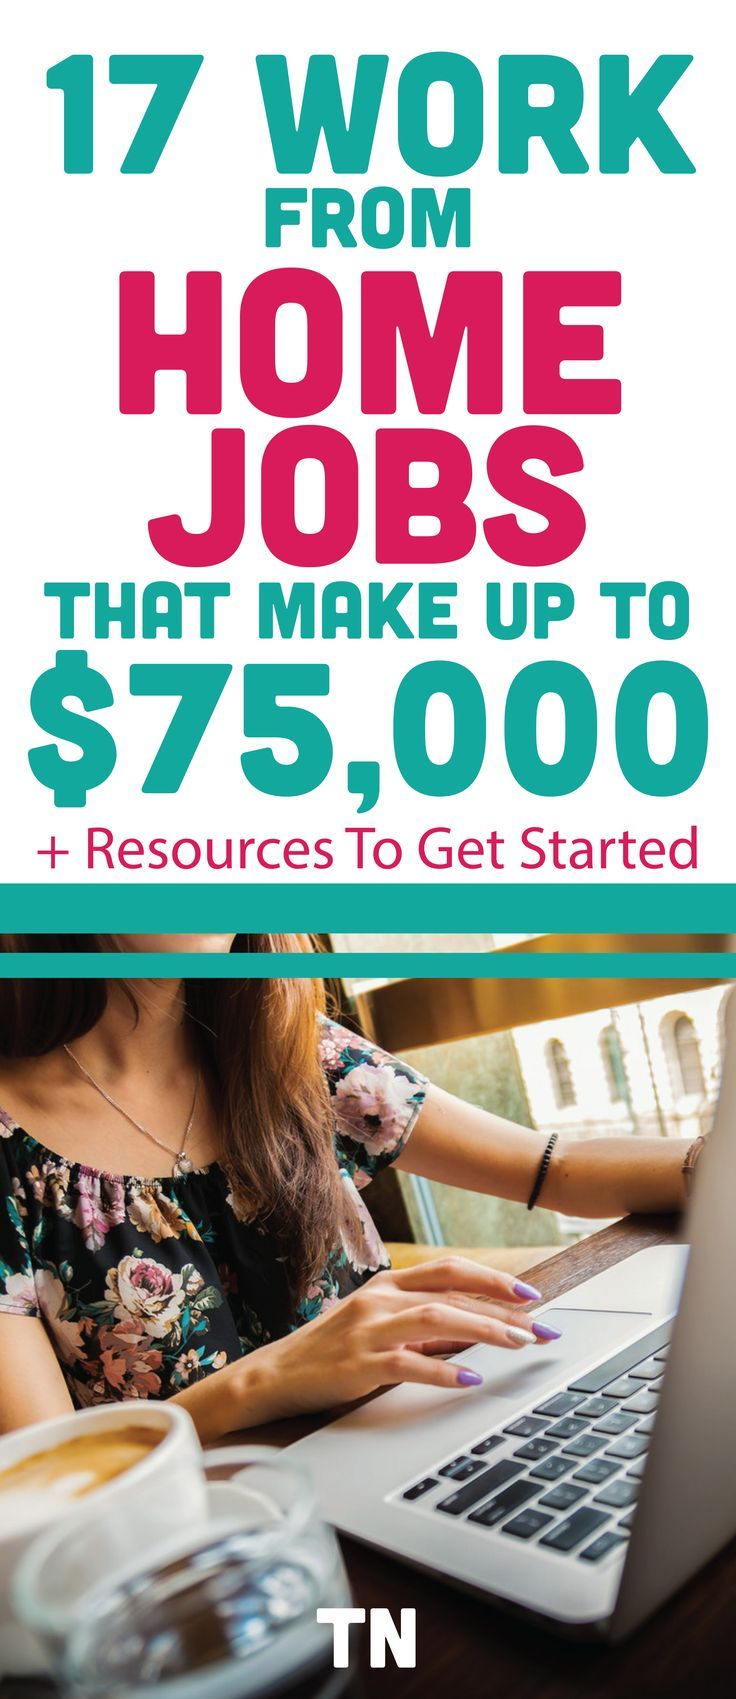 7 Work From Home Jobs Paying $15 An Hour You Need To Know About – Teal Notes